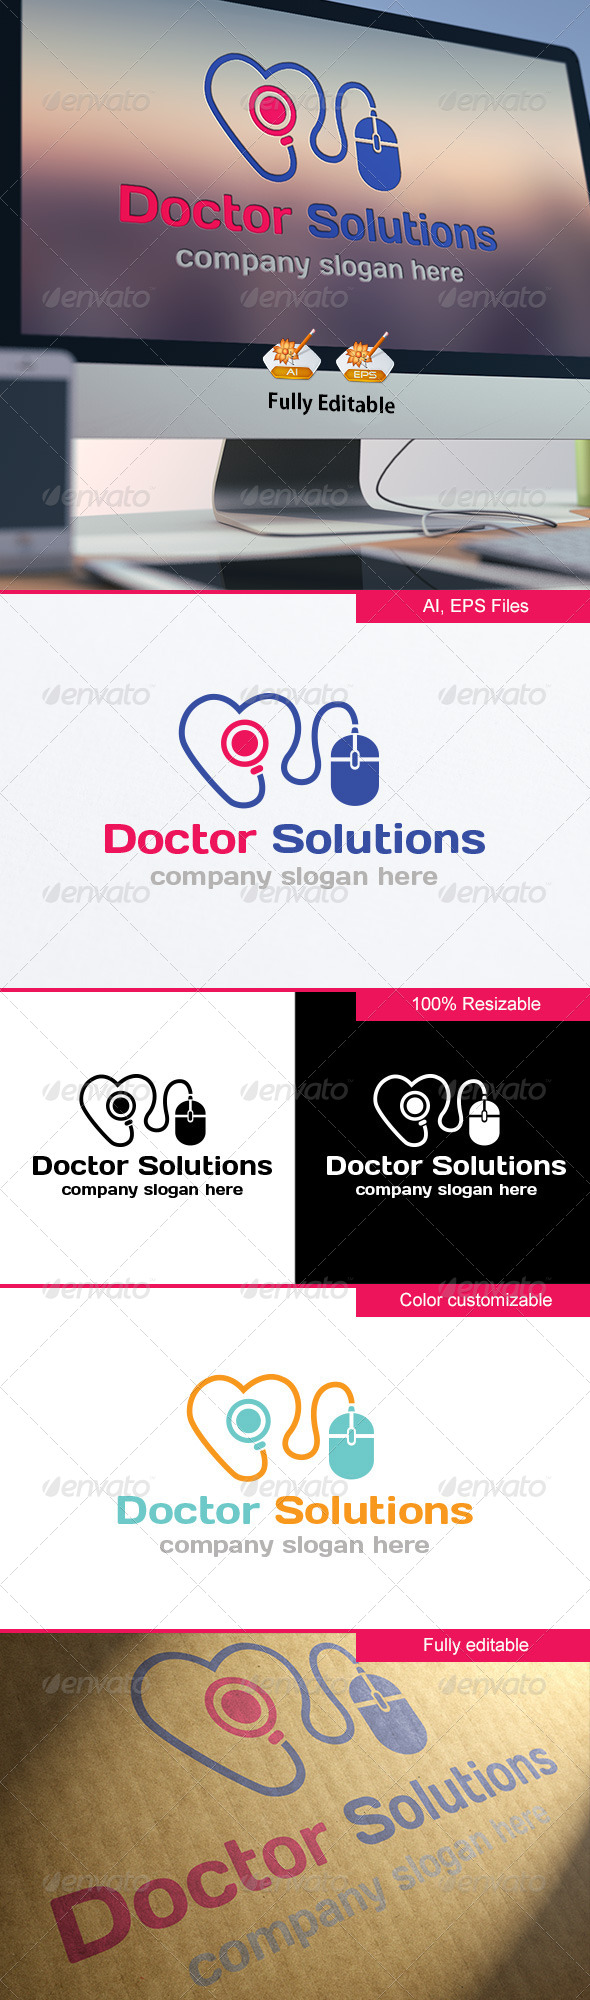 GraphicRiver Doctor Solutions Logo 8414869